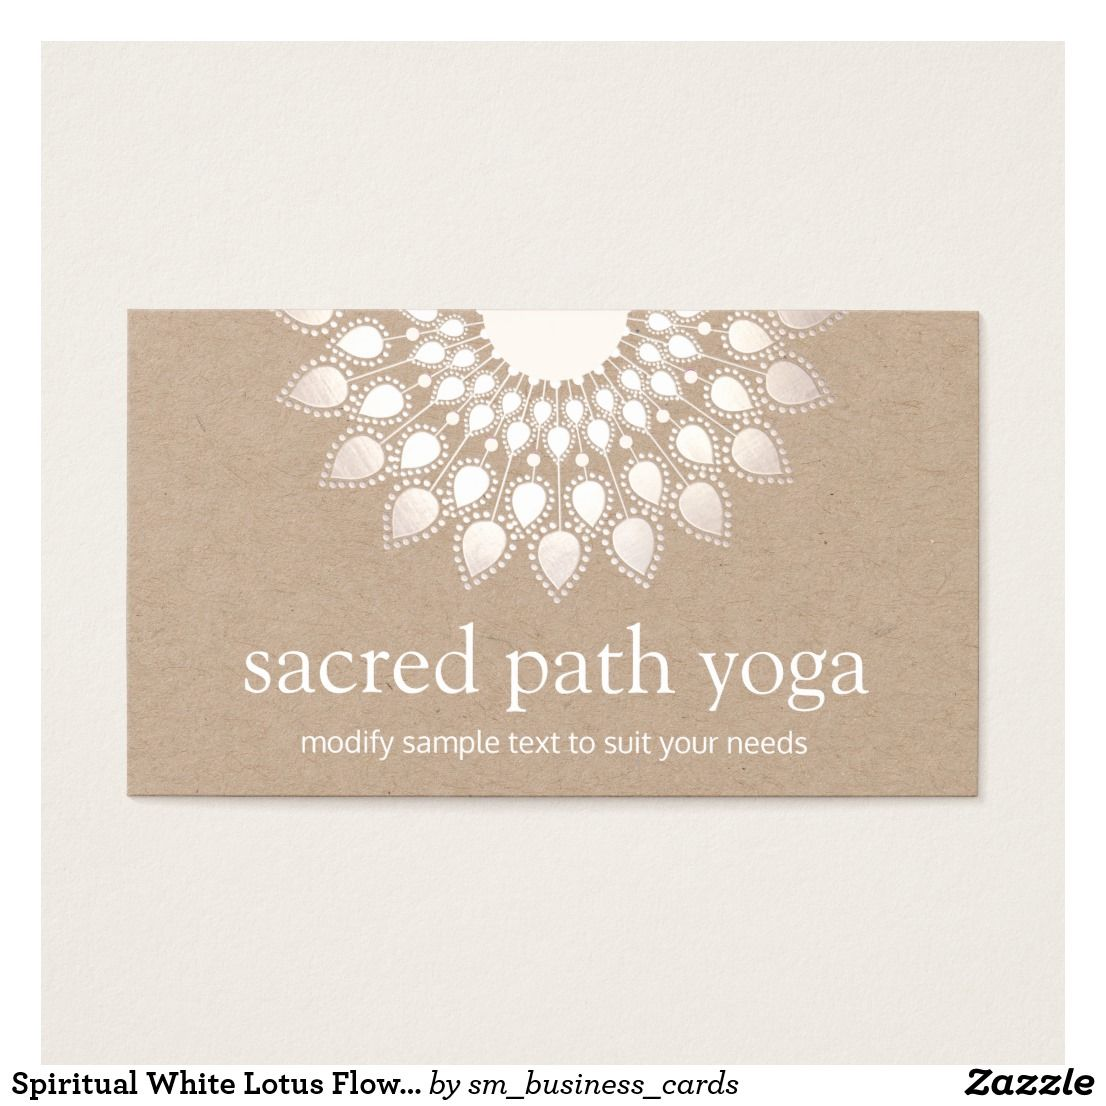 Spiritual White Lotus Flower Mandala Yoga Teacher Business Card ...